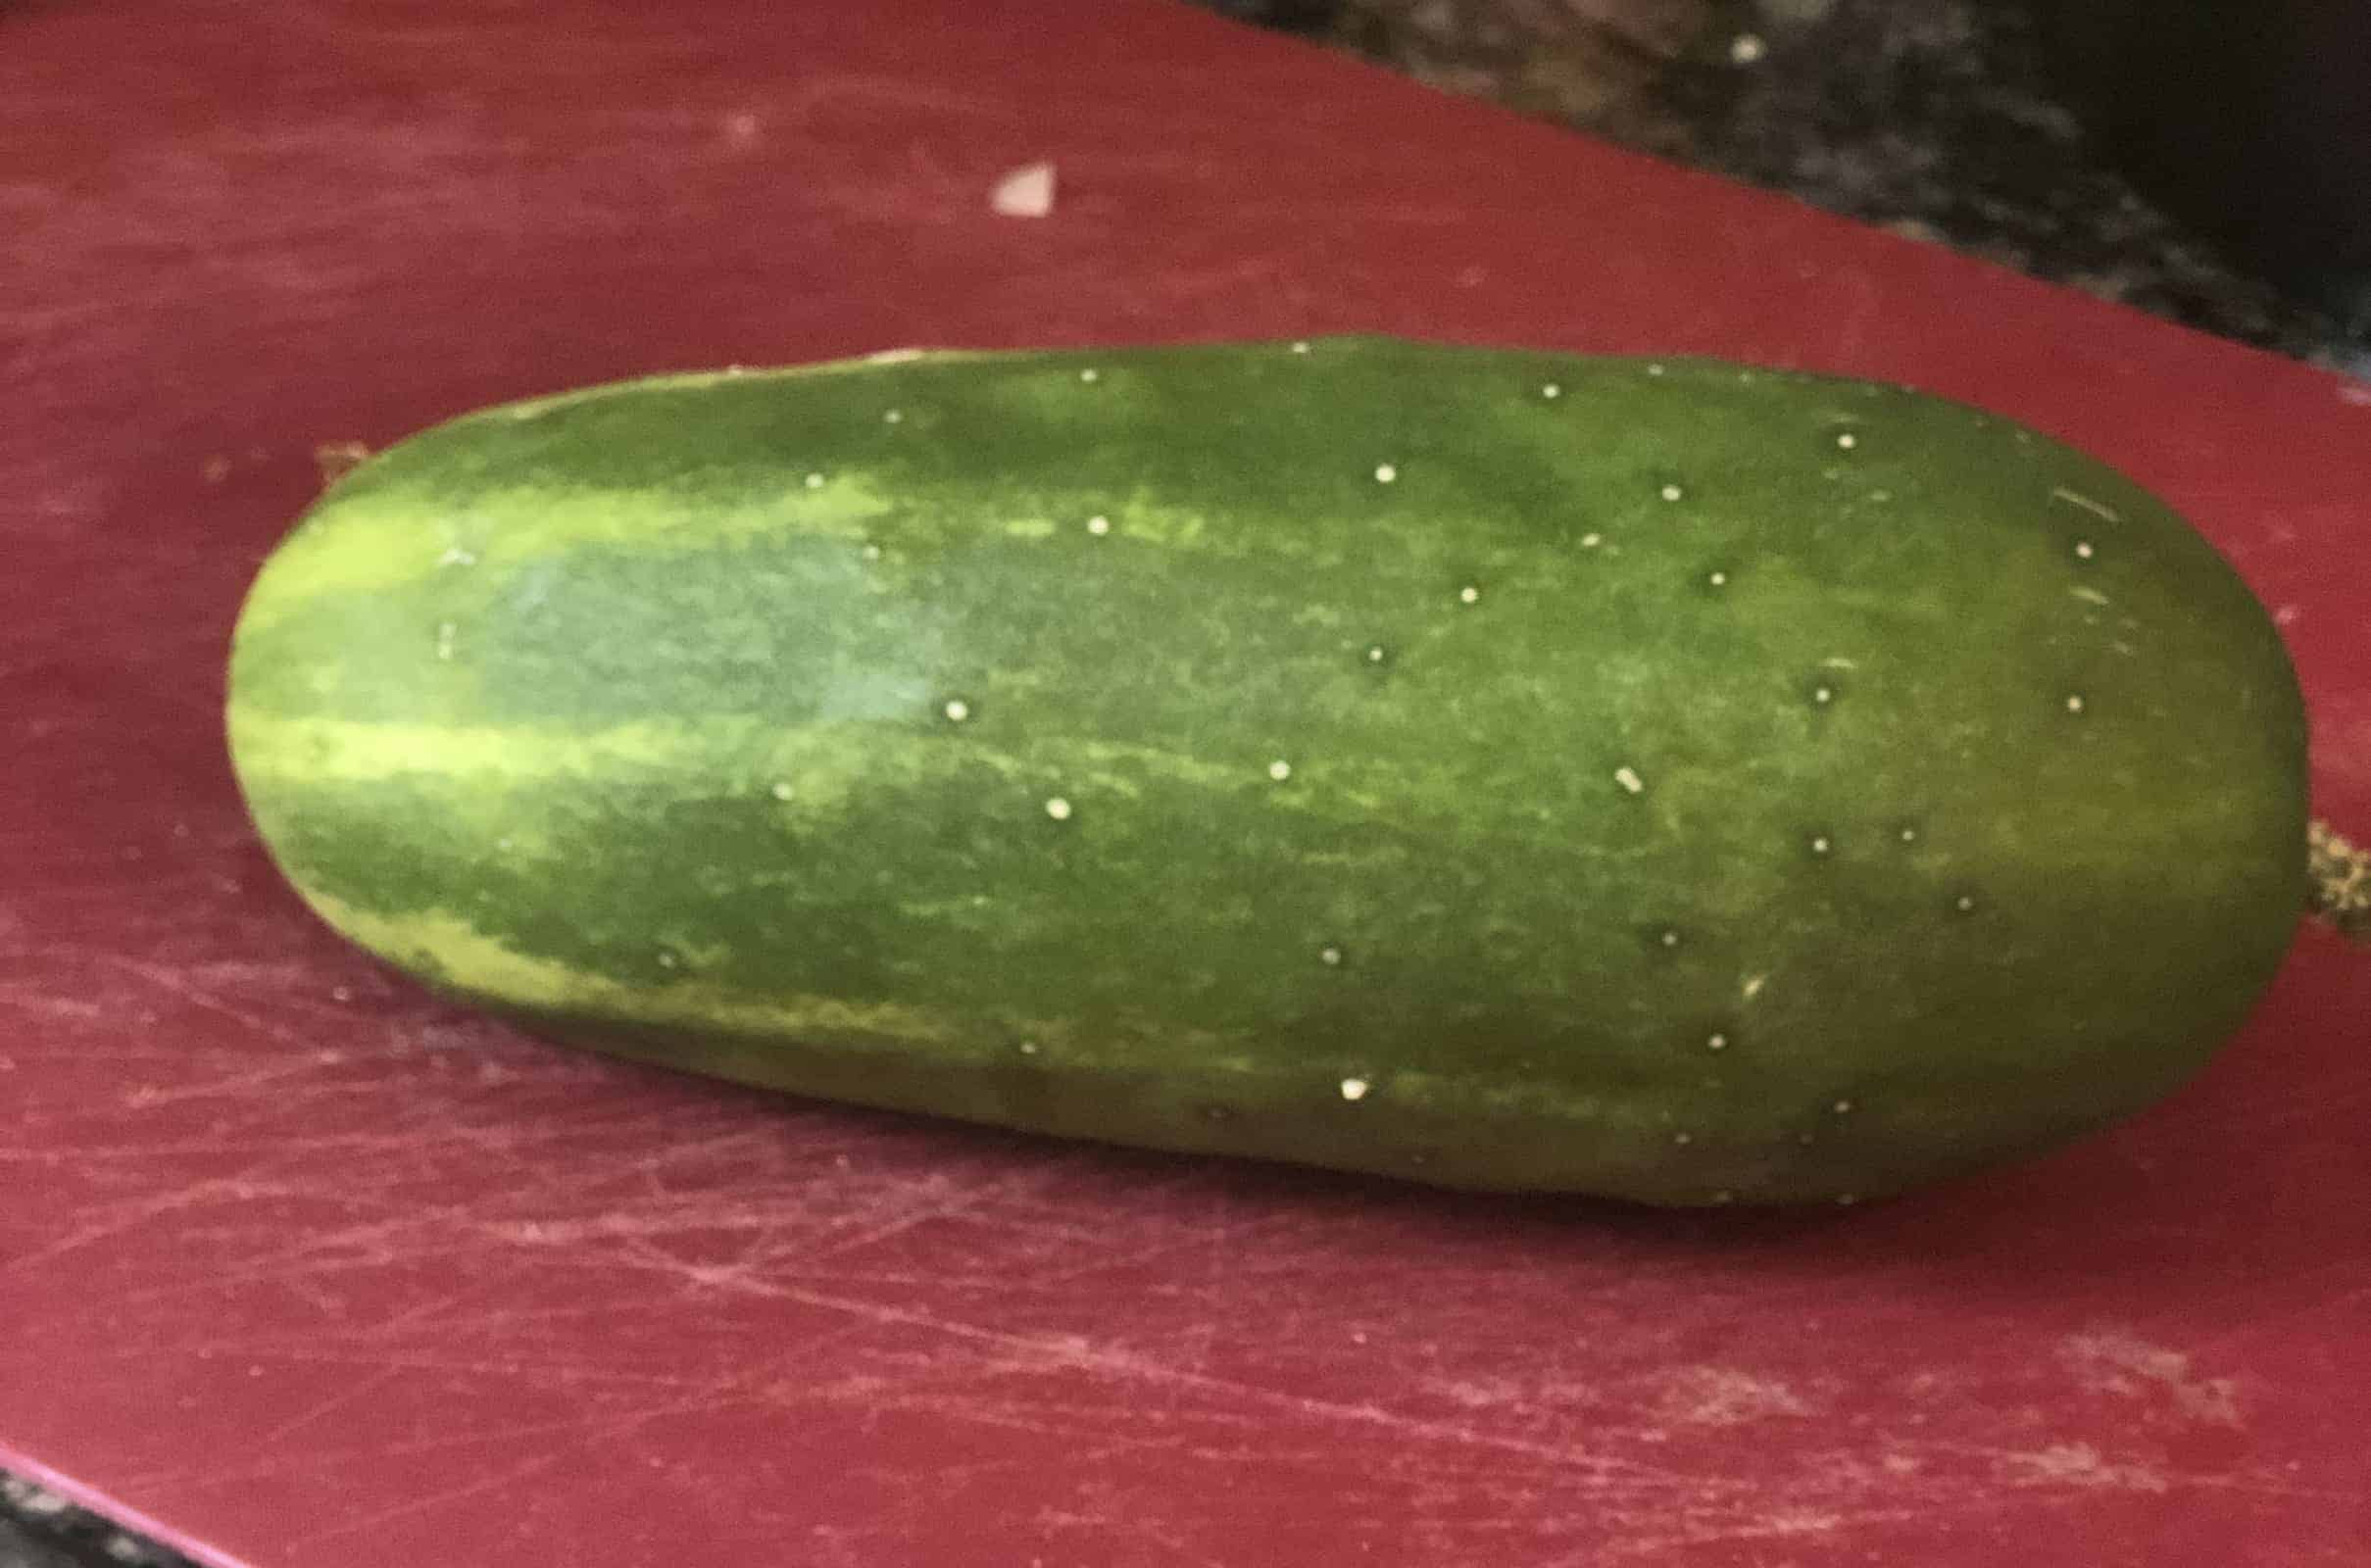 One whole cucumber on a maroon cutting board